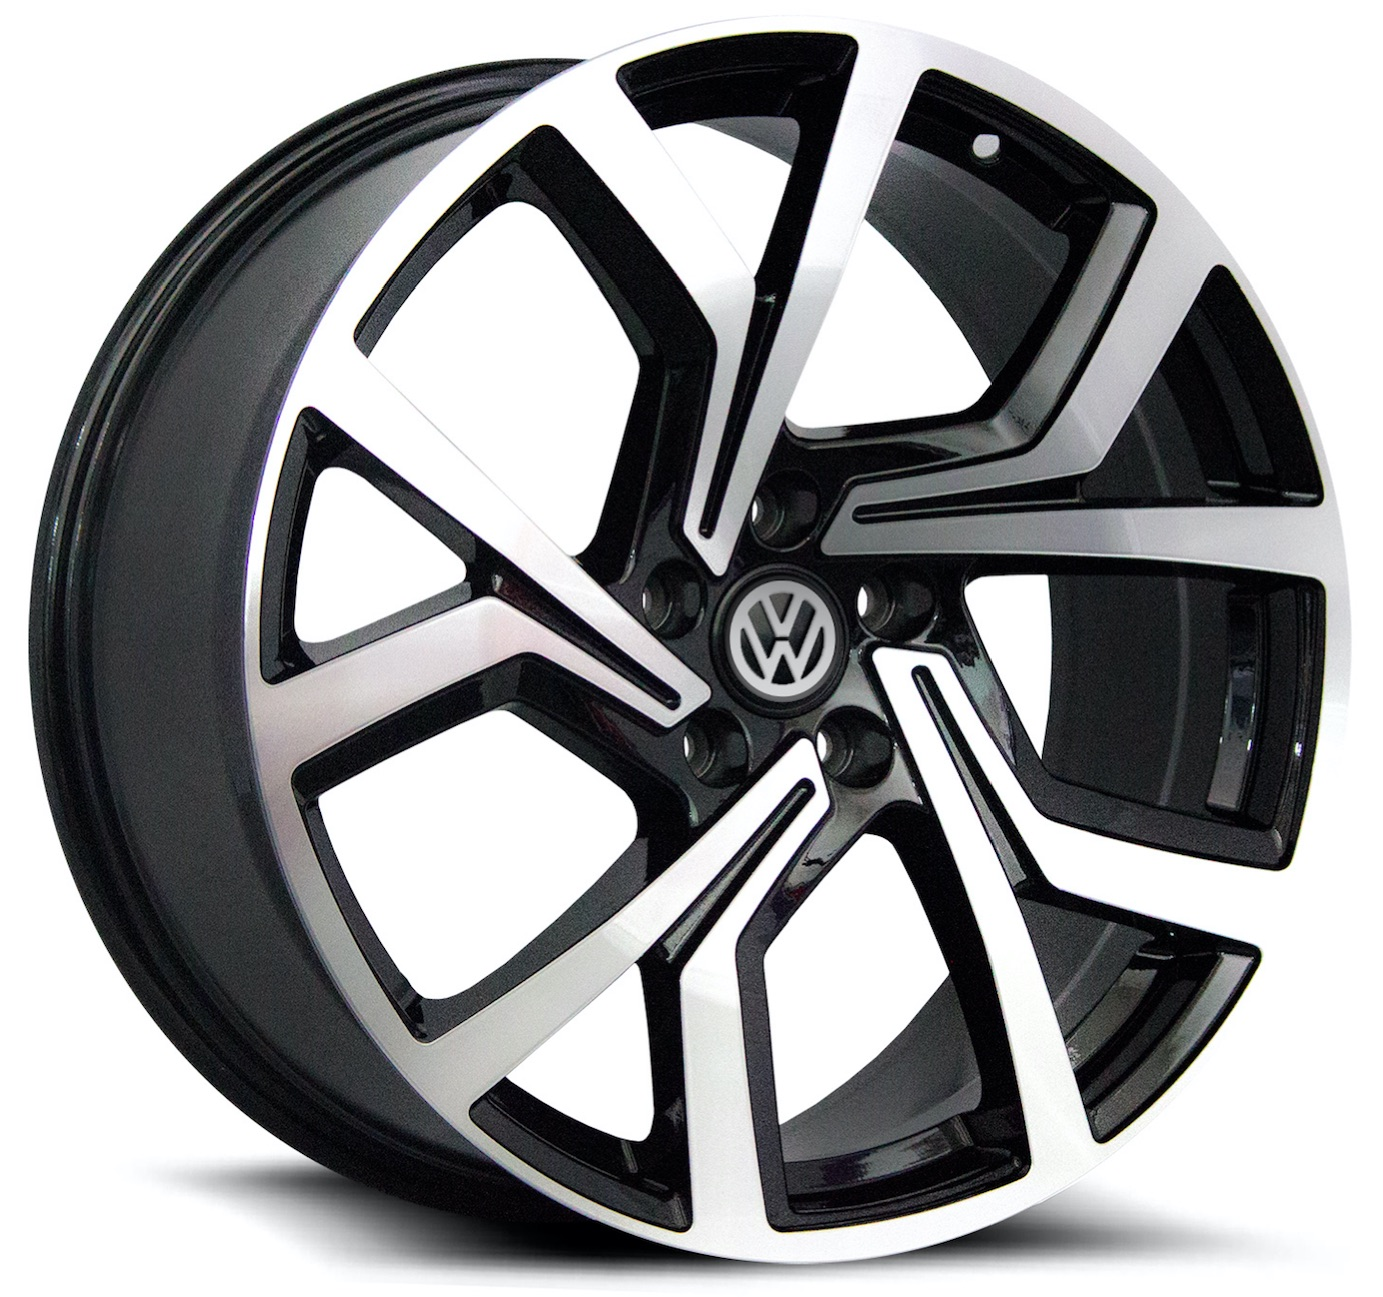 5573 | GTI CLUBSPORT – BLACK POLISH FACE (17×7.5″ – 5-112 +45)